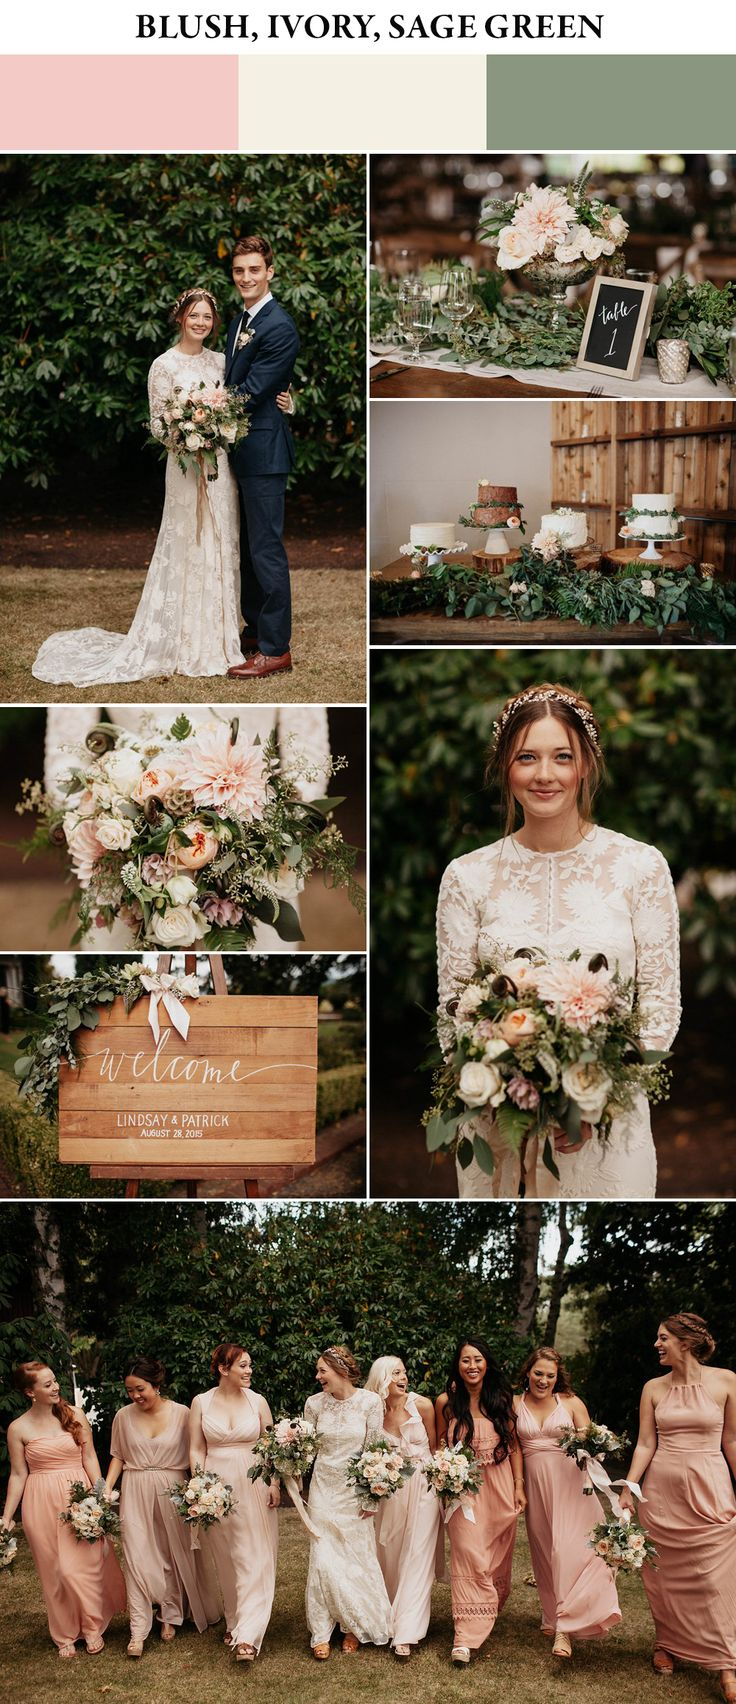 This blush + ivory + sage green color palette is our fave look for any spring weding | photos by Jordan Voth Photography